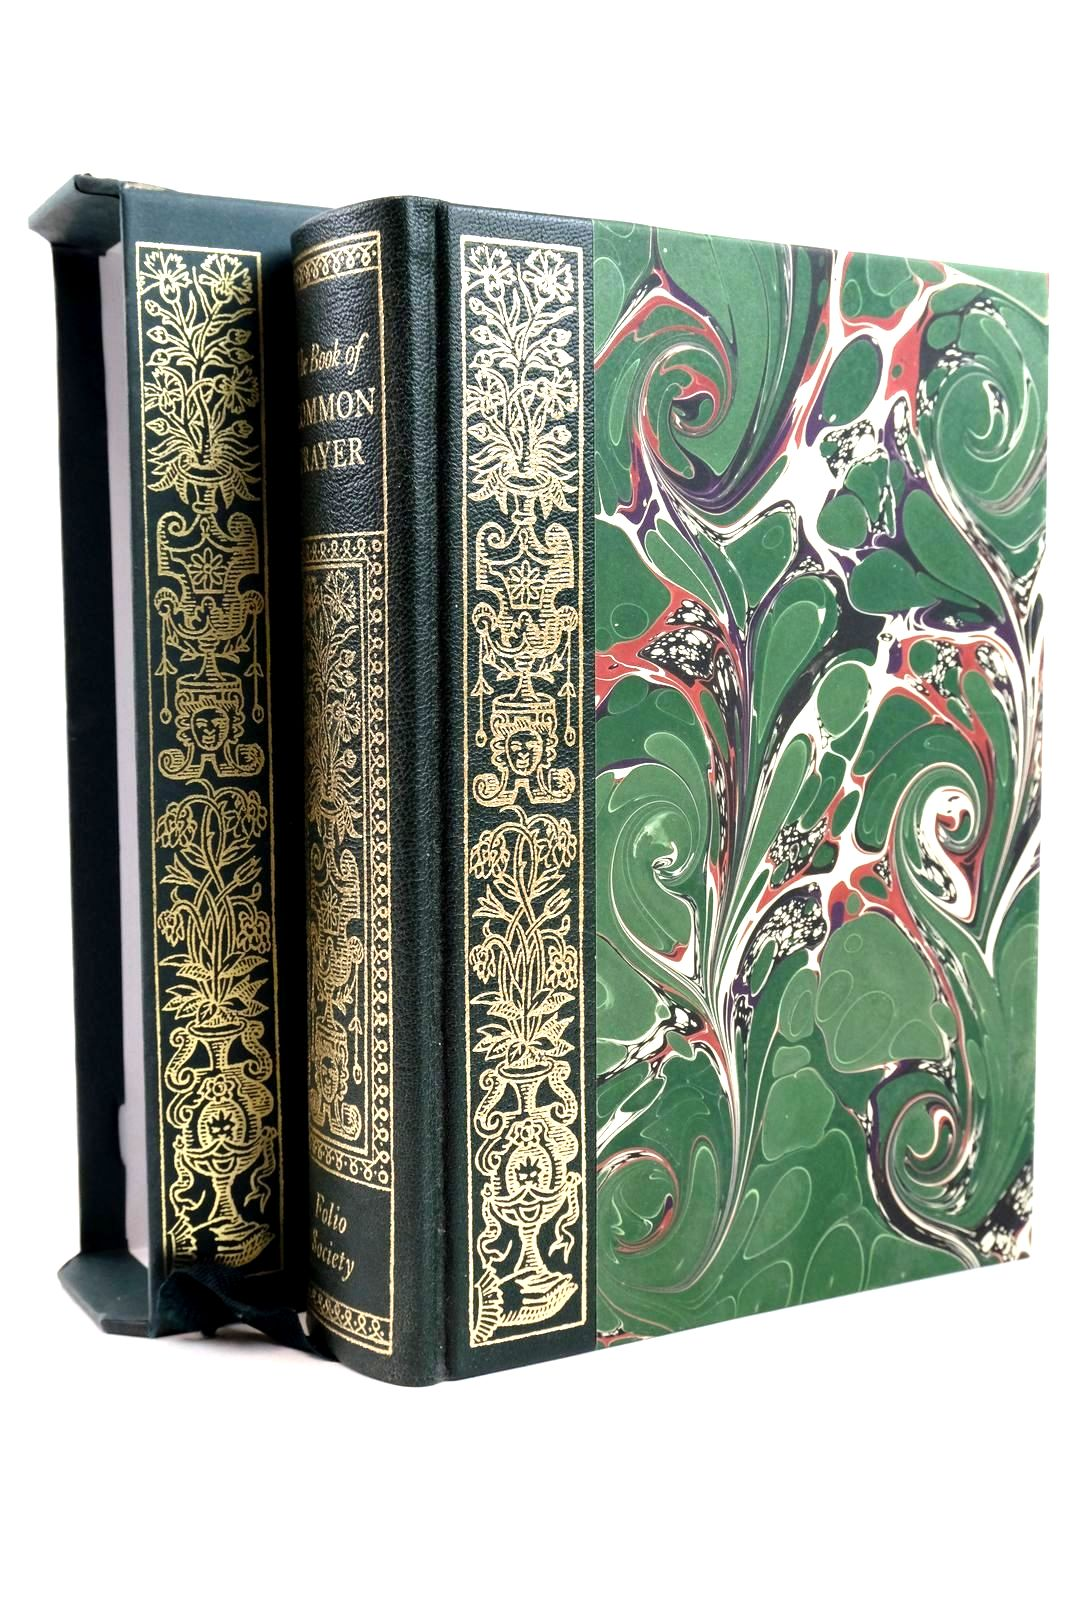 Photo of THE BOOK OF COMMON PRAYER illustrated by Durer, Albert Holbein, Hans published by Folio Society (STOCK CODE: 1320764)  for sale by Stella & Rose's Books